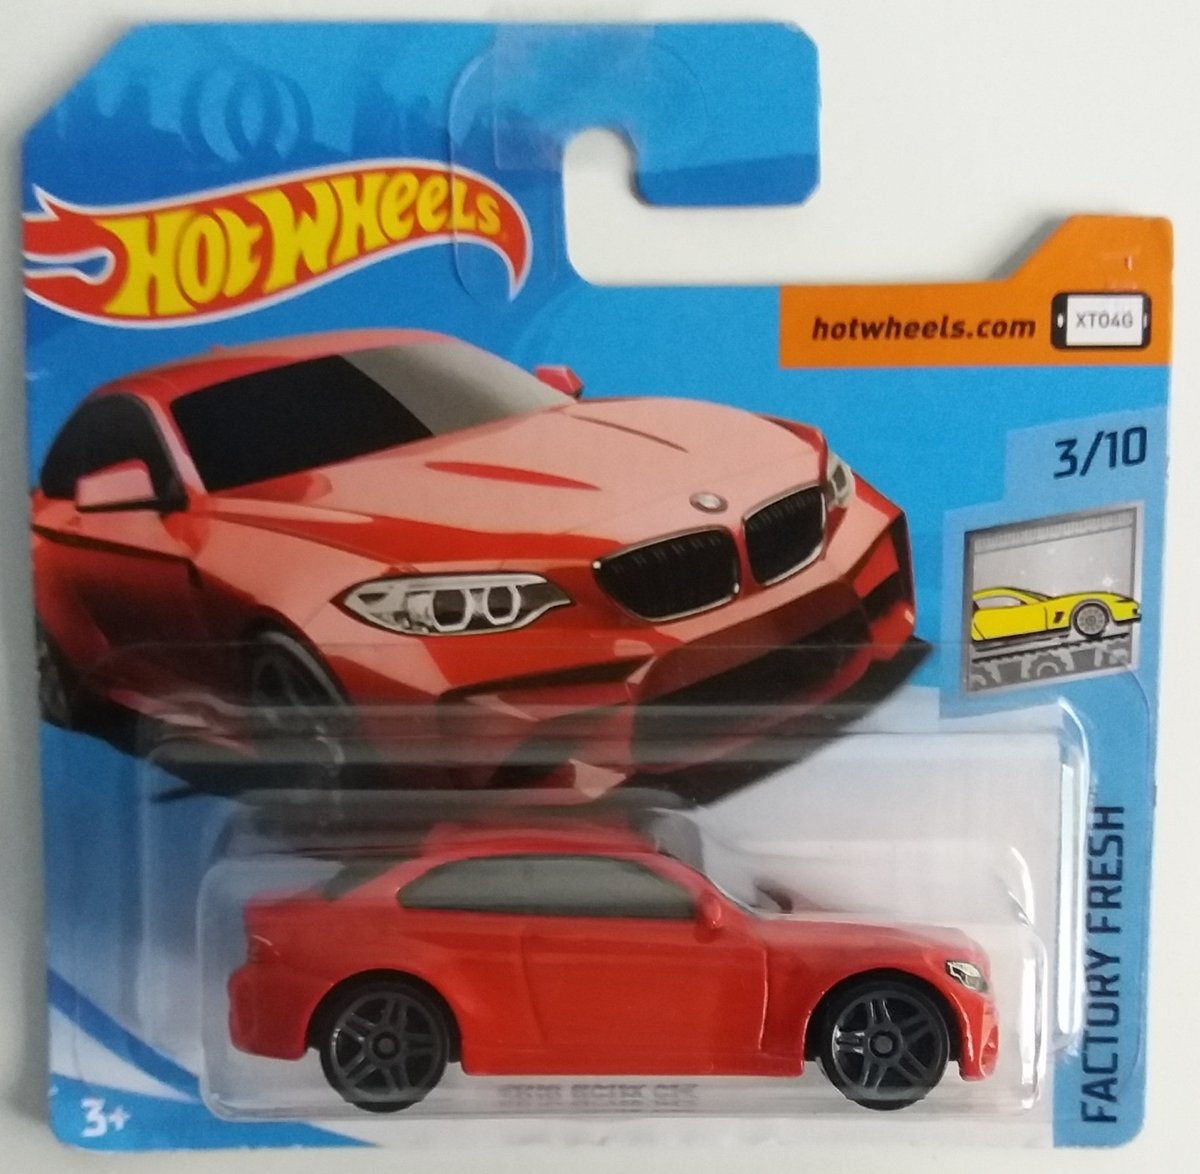 Excited to share the latest addition to my #etsy shop: Hot Wheels BMW M2 Red Factory Fresh Short Card Rare Miniature Collectable Model https://etsy.me/3gjoPU7  #red #birthday #christmas #hotwheels #bmwm2 #shortcard #factoryfresh #miniature #toycarpic.twitter.com/7L2KaC5coN